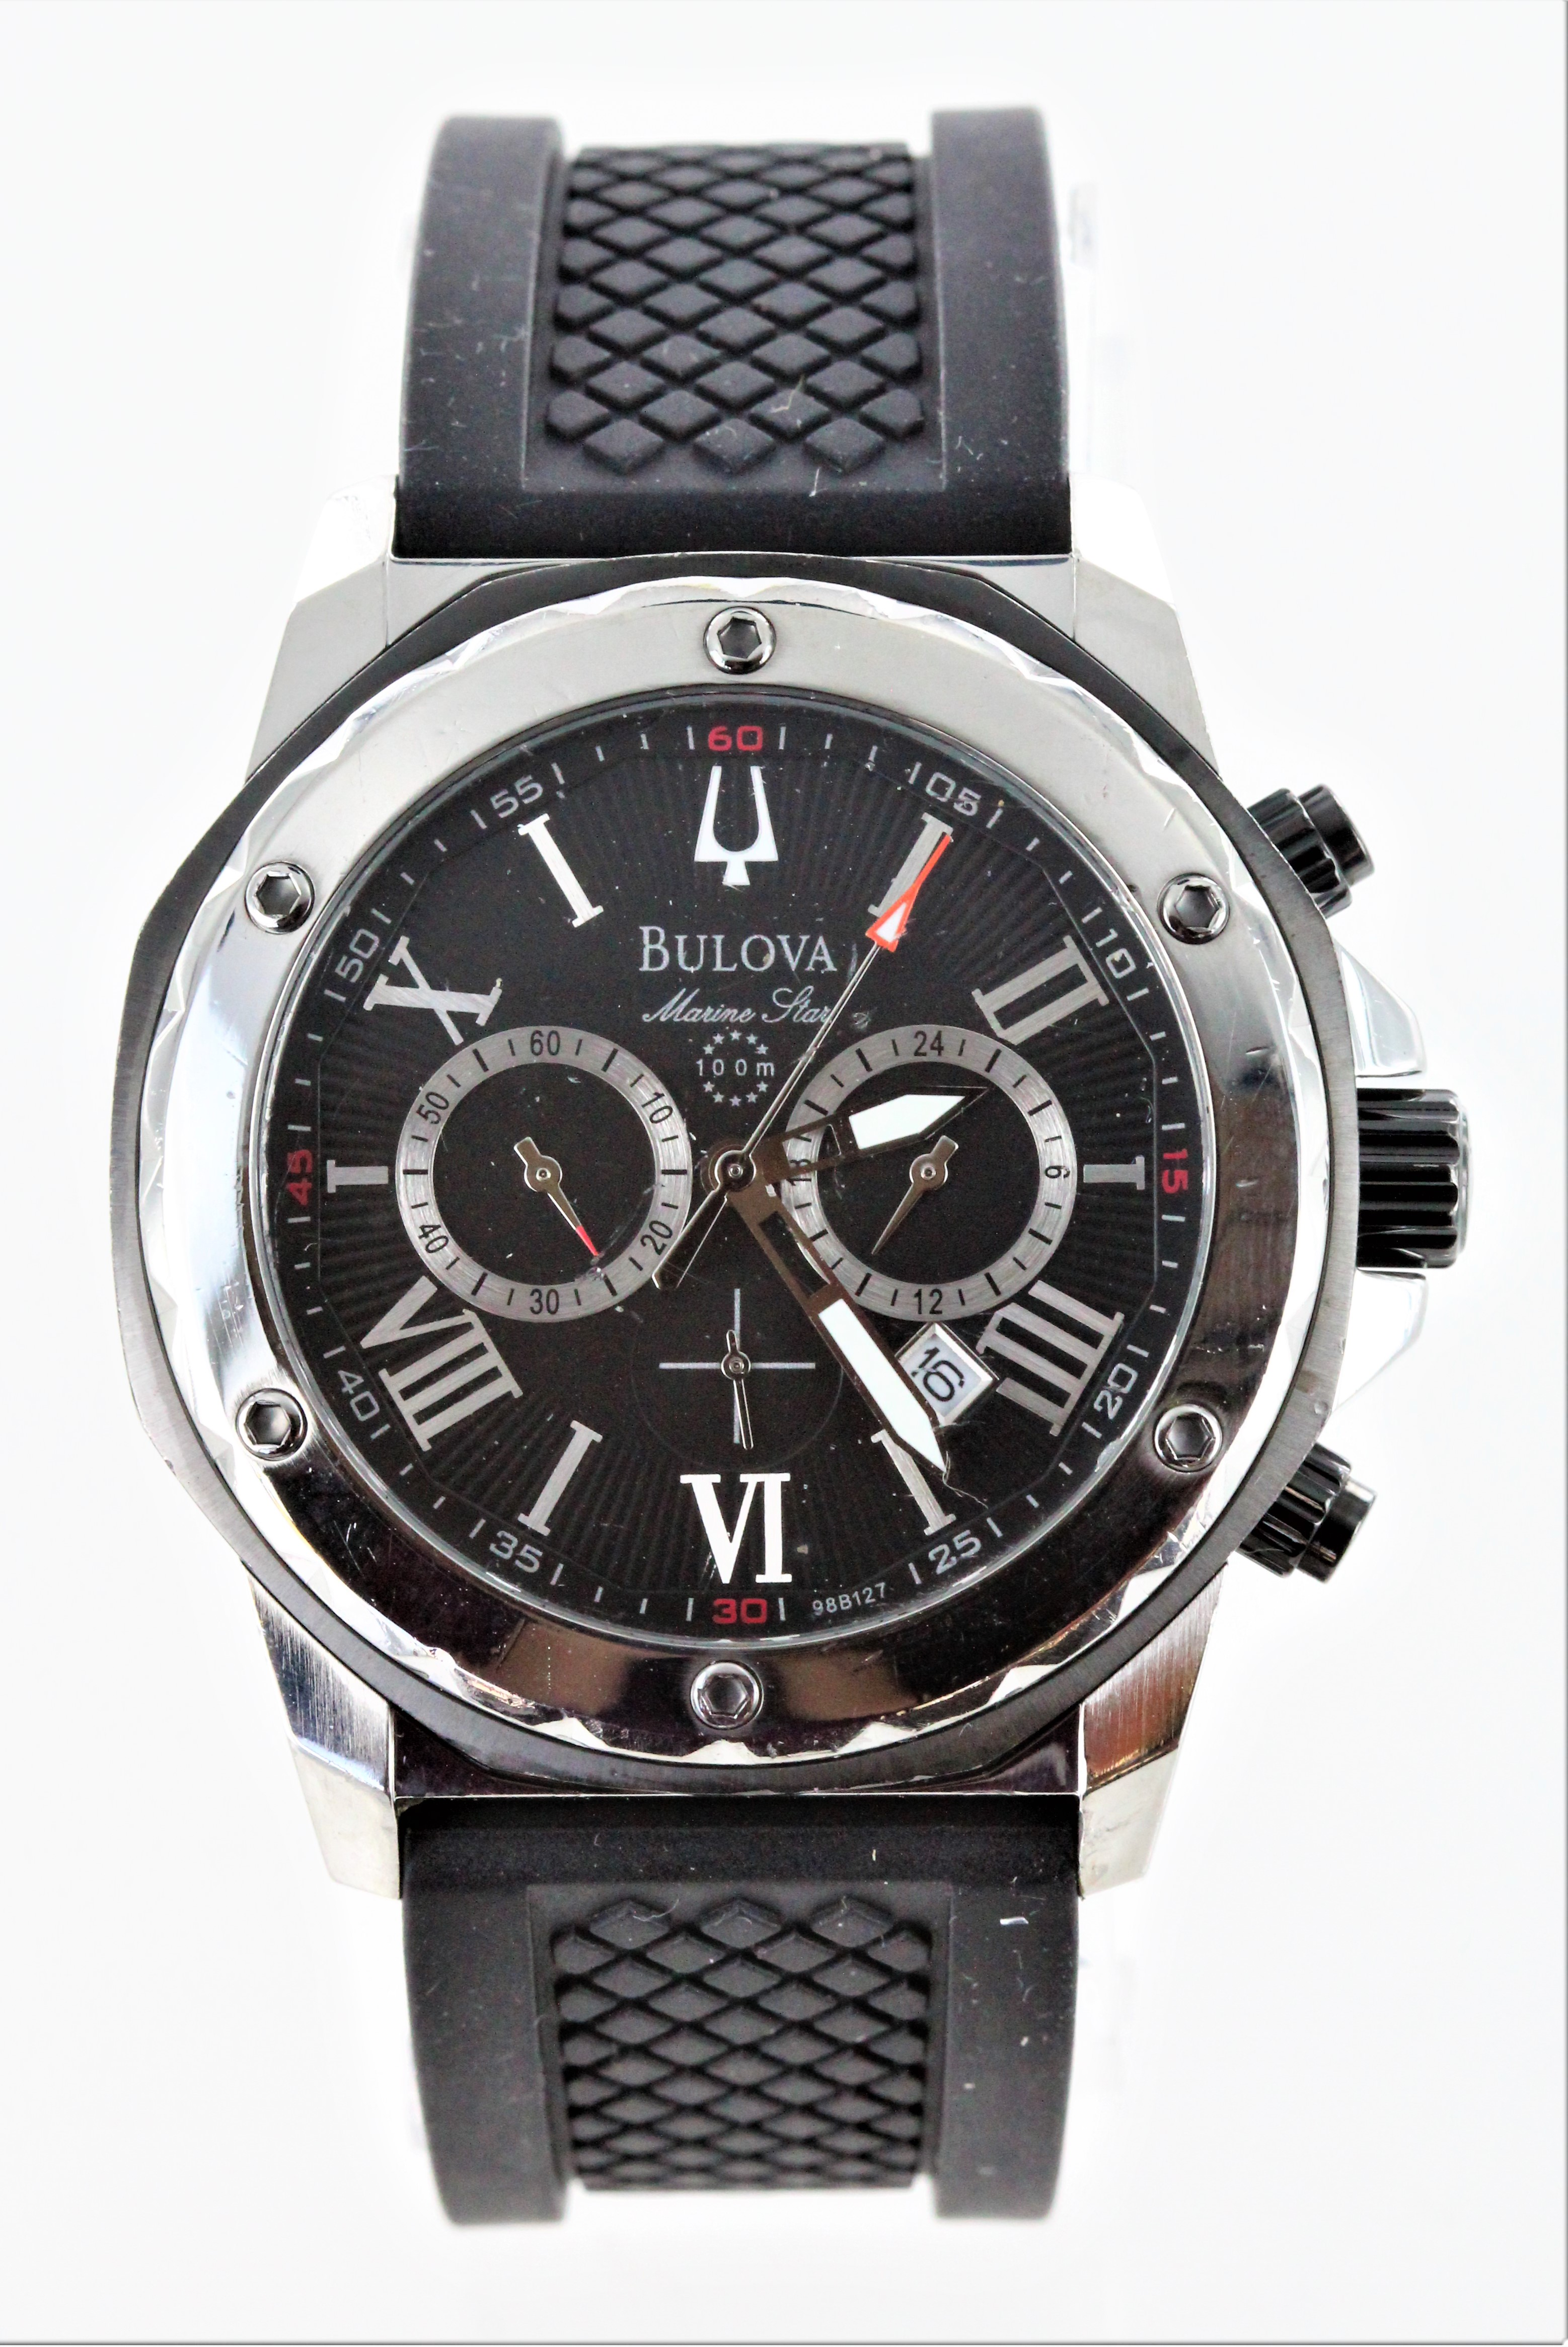 92f208195 Details about Pre-owned Bulova Men's 98B127 Marine Star Black Dial Strap  Watch